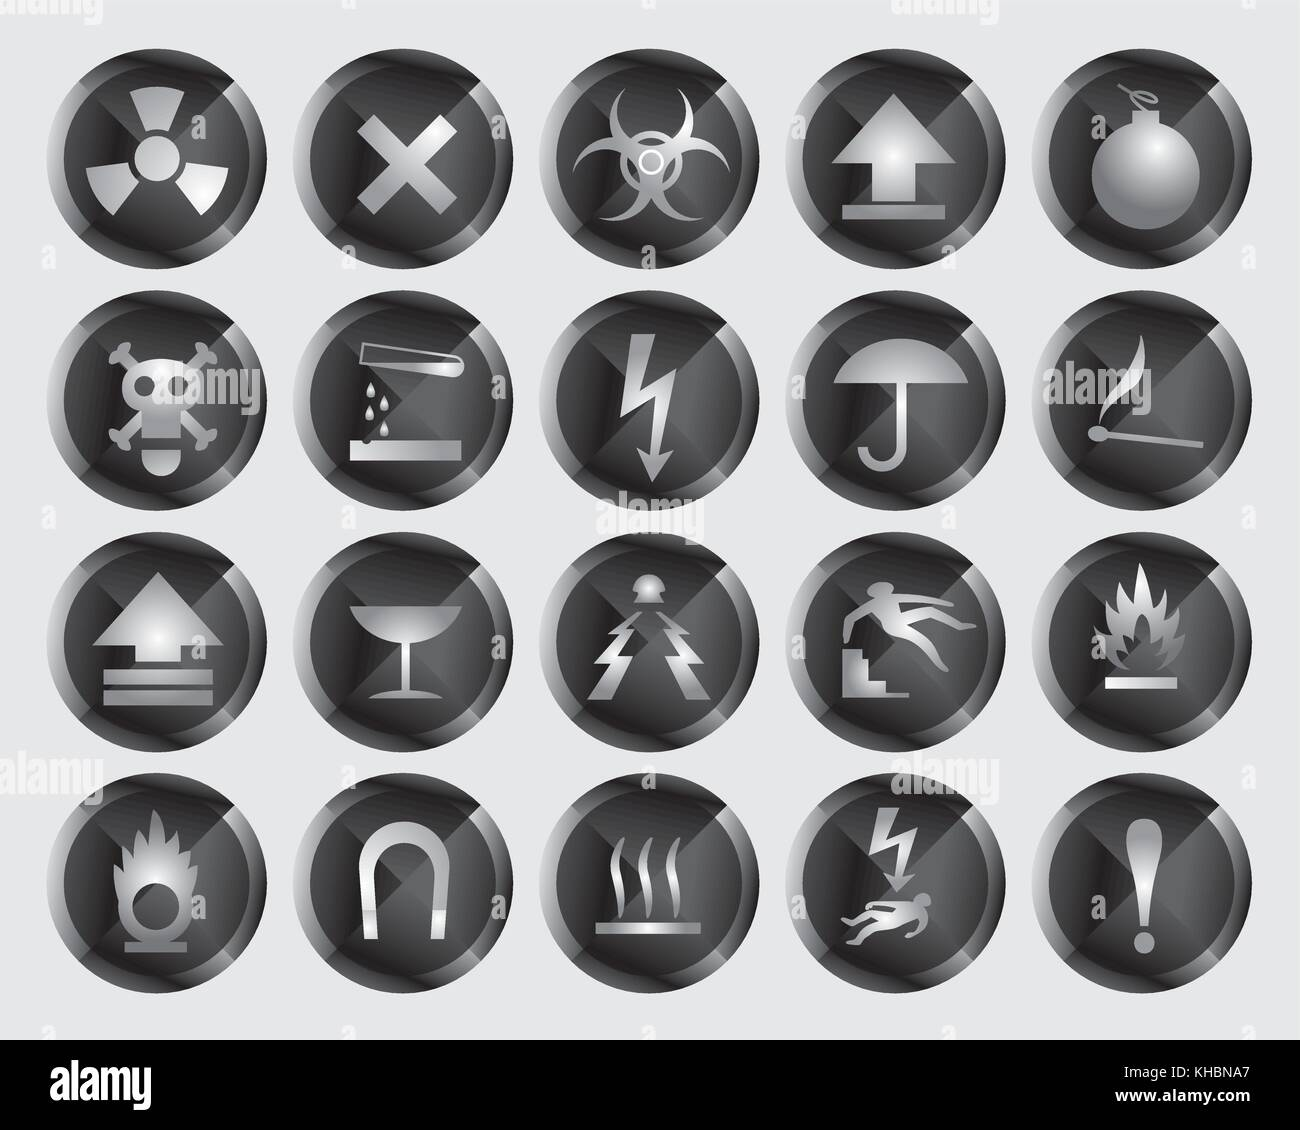 danger signs and icons - vector icon set - Stock Vector